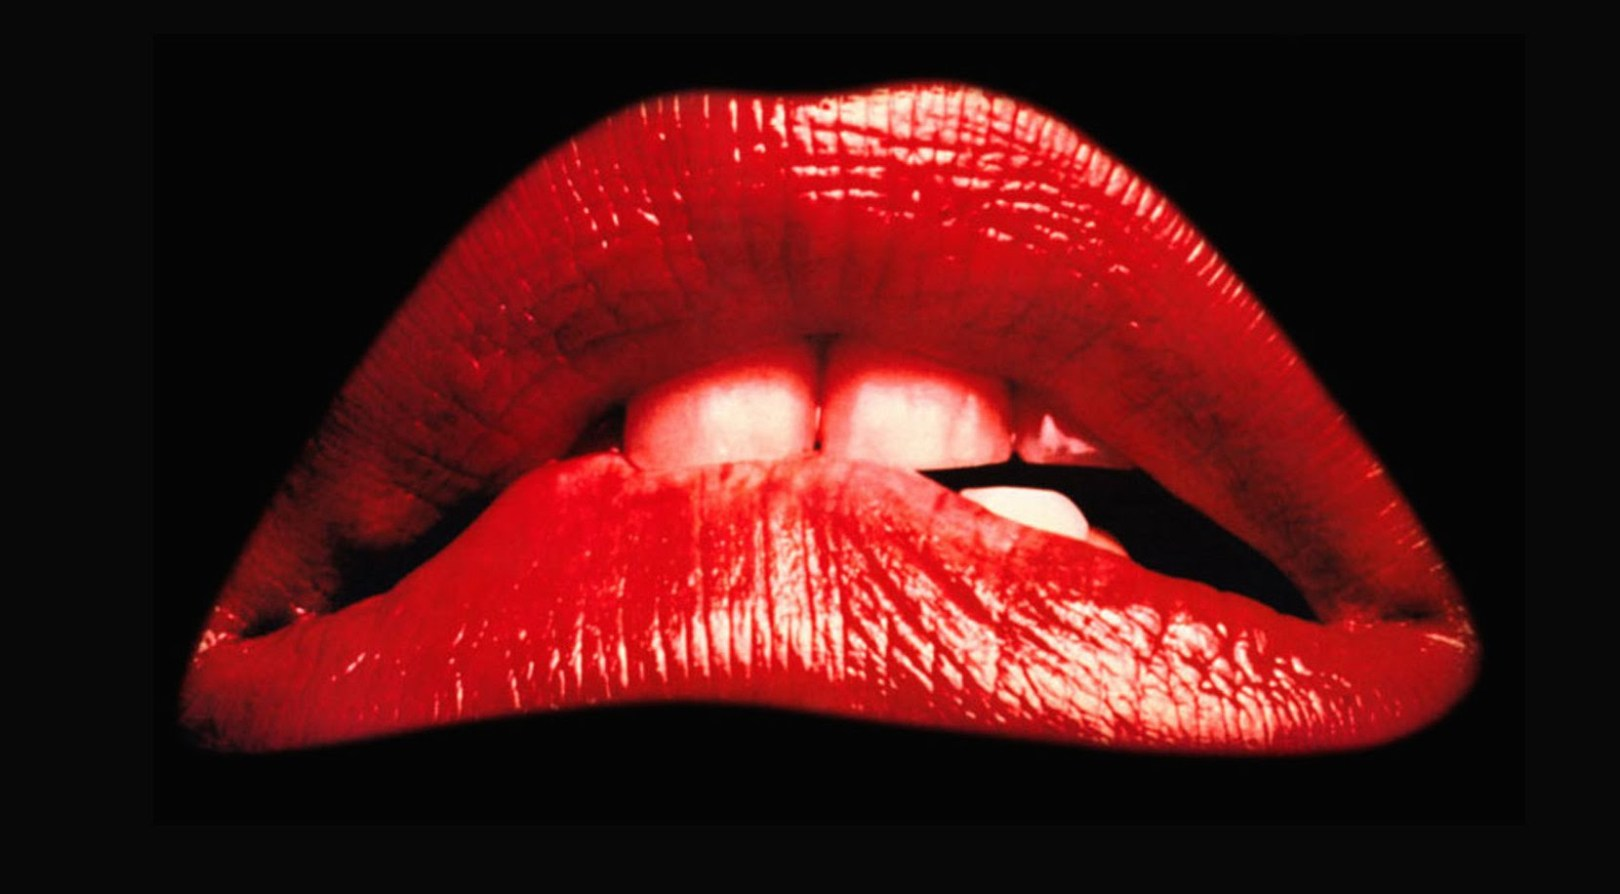 Films in London this HALLOWEEN: THE ROCKY HORROR PICTURE SHOW at The Gate (31 OCT).